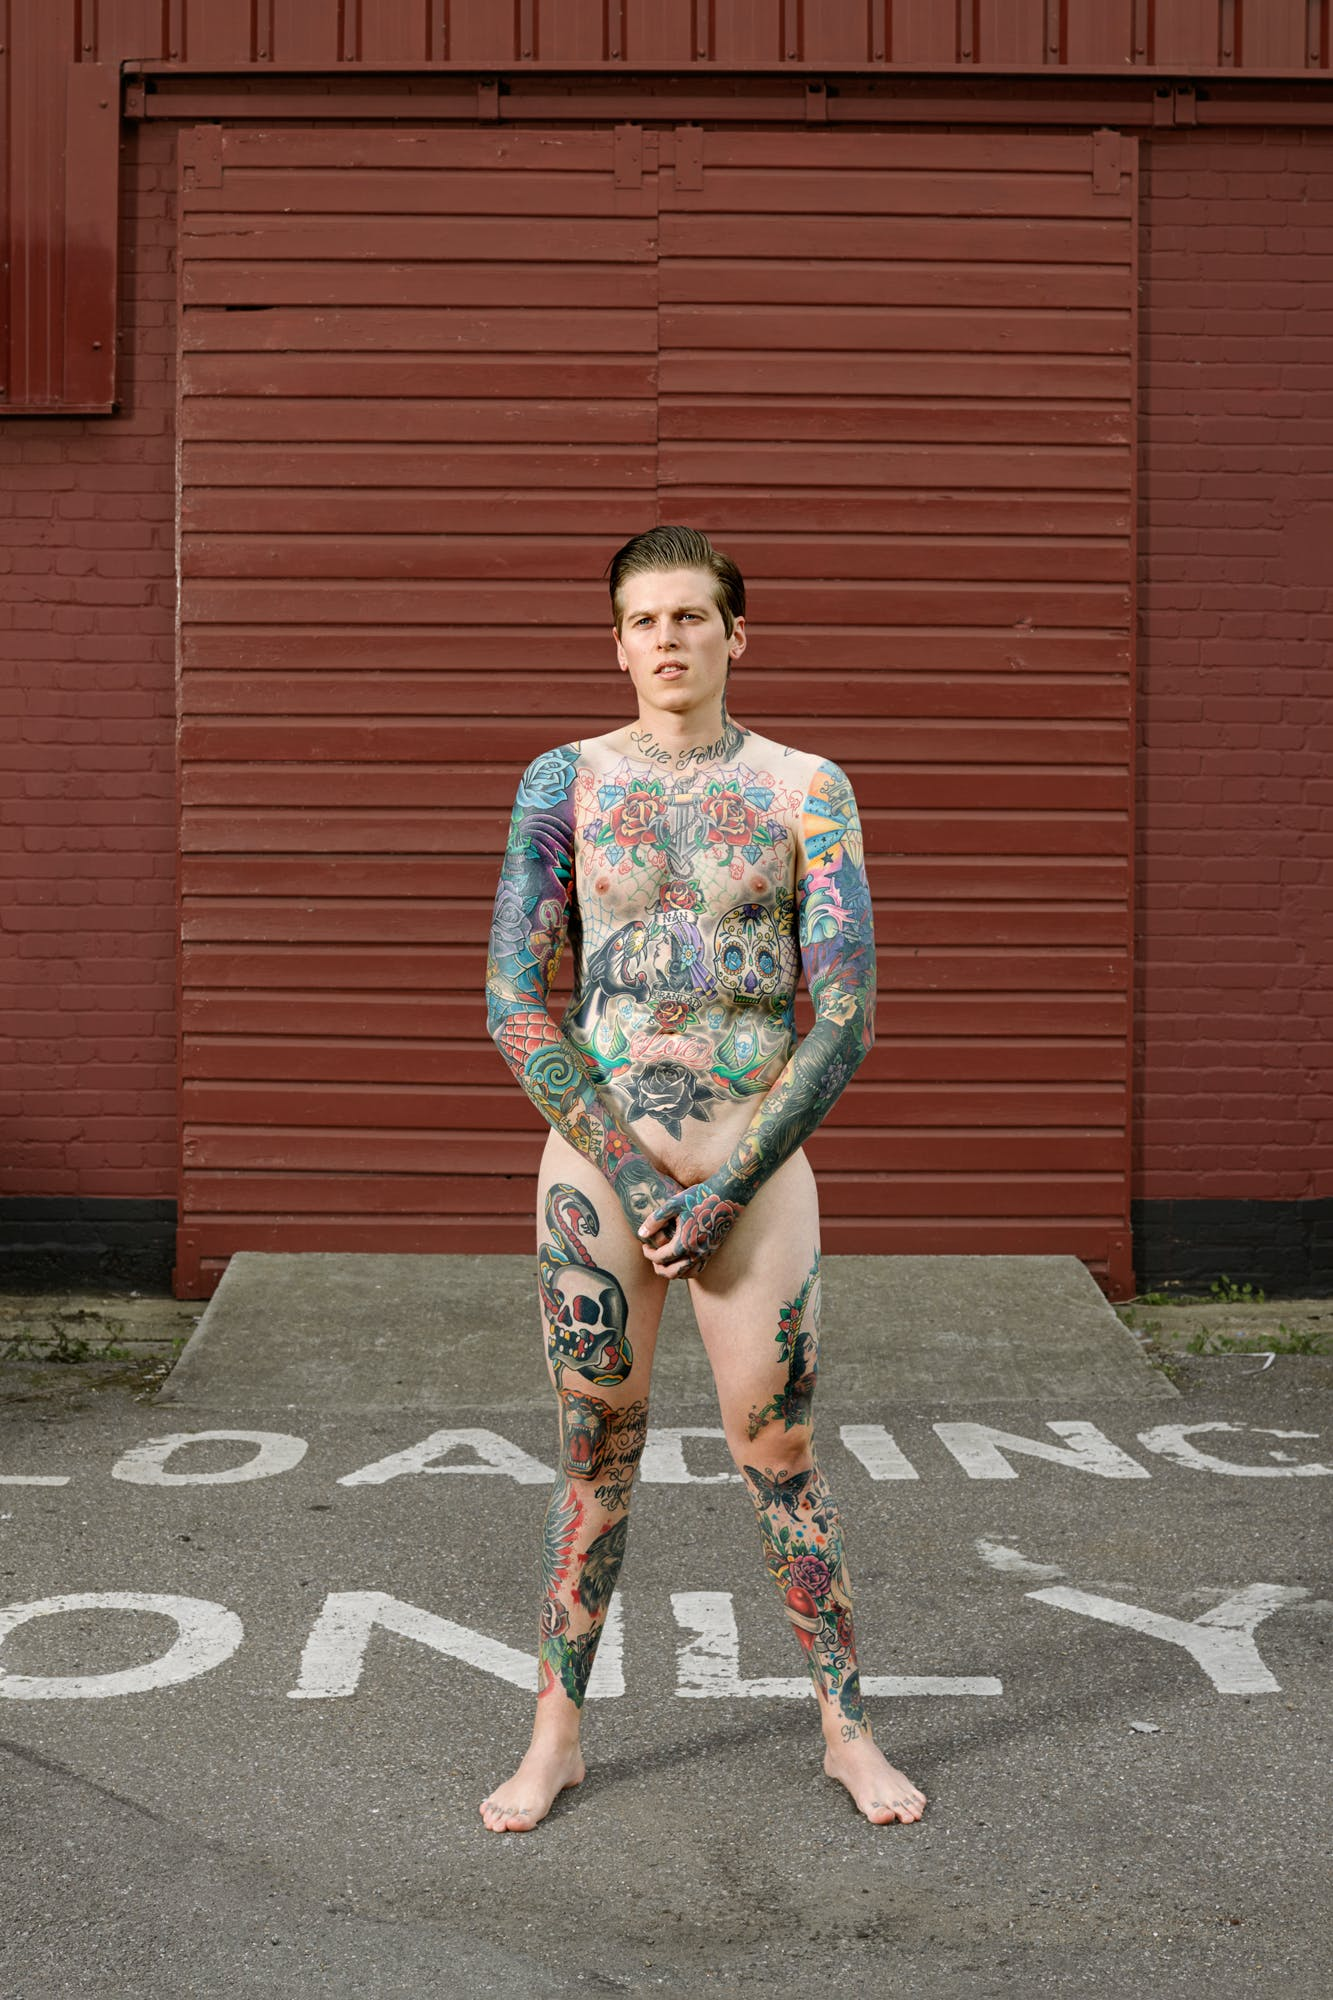 Alan Powdrill Raw Portraits Of The People Devoted To Full Body Tattoos 3 Manhattans District Attorney Will No Longer Prosecute Low Level Cannabis Crimes